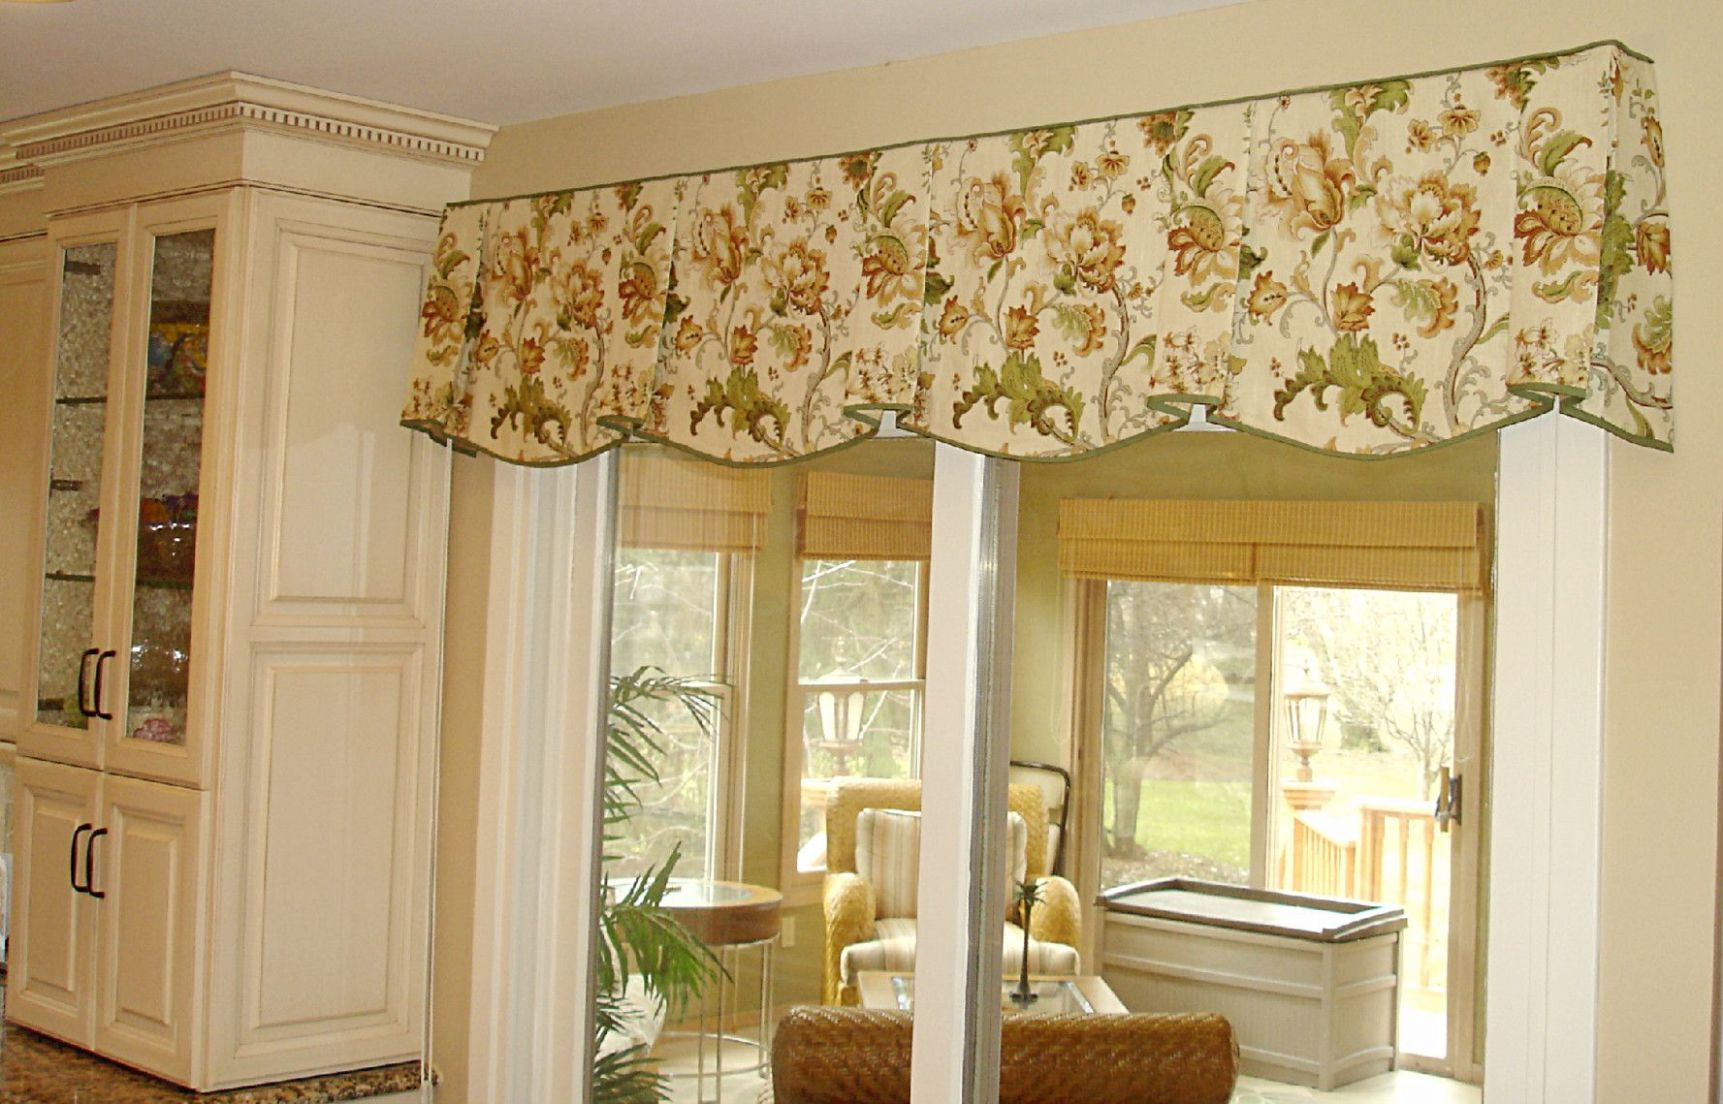 living room valance ideas | Country kitchen curtains - window valance ideas for dining room